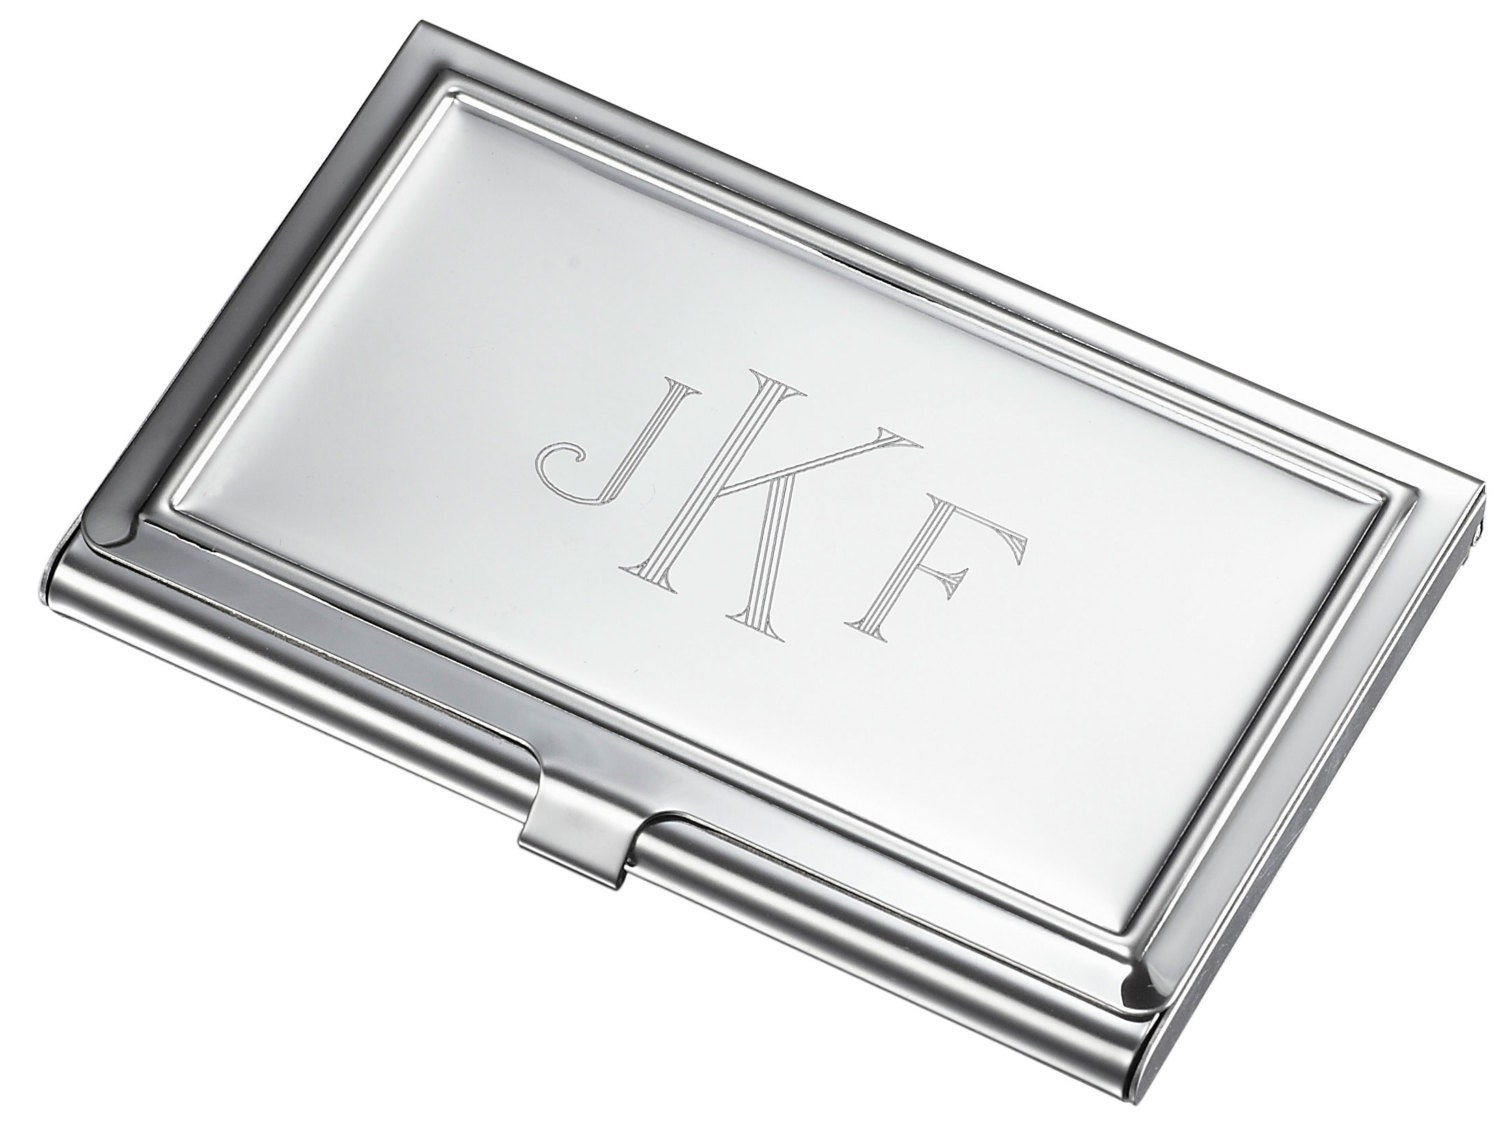 Personalized business card case stainless steel business card case personalized business card case stainless steel business card case engraved business card holder colourmoves